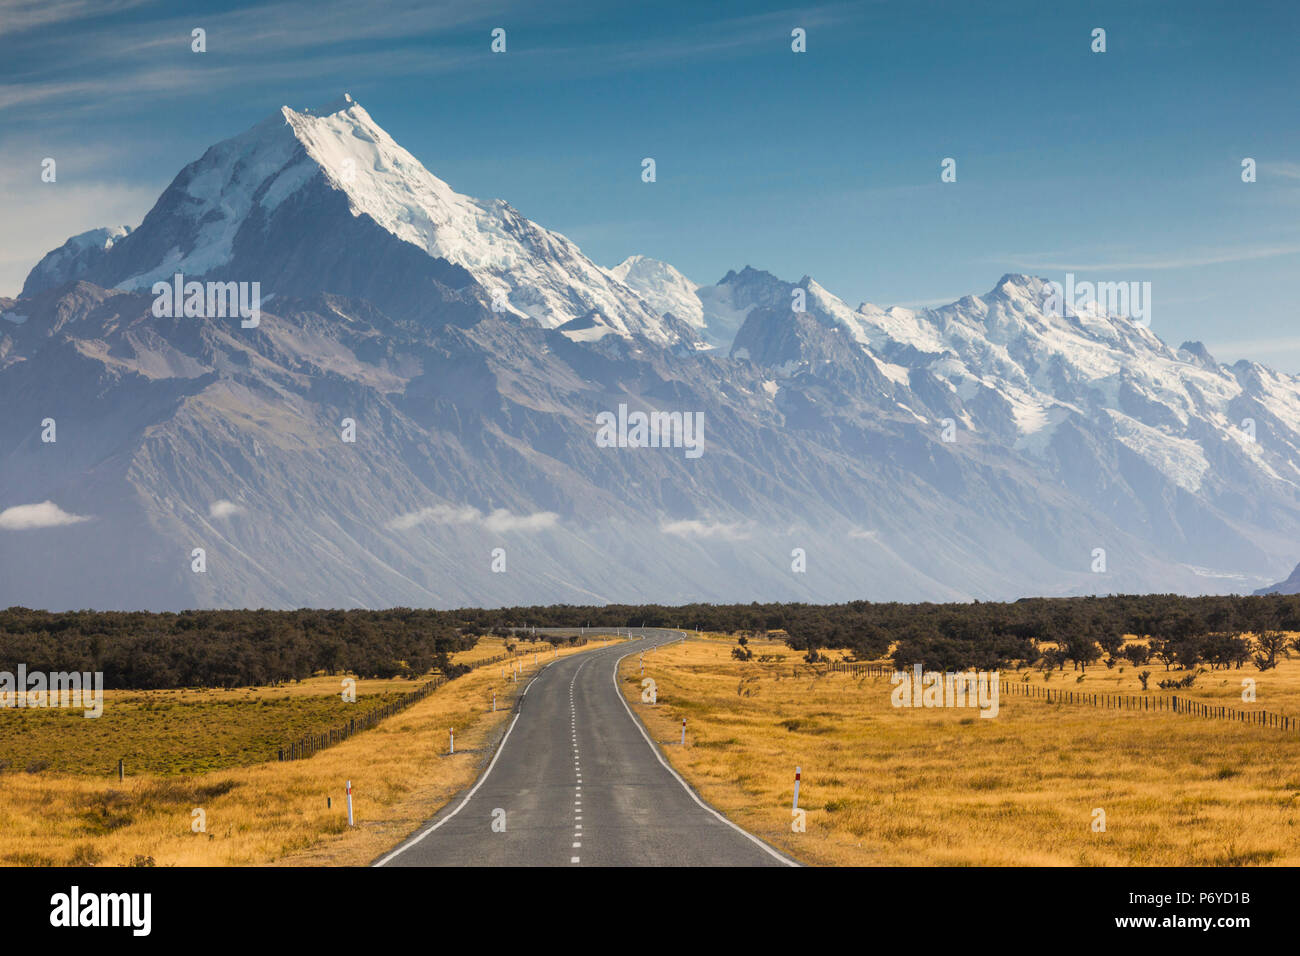 New Zealand, South Island, Canterbury, Aoraki-Mt. Cook National Park, Mt. Cook and Highway 80 - Stock Image